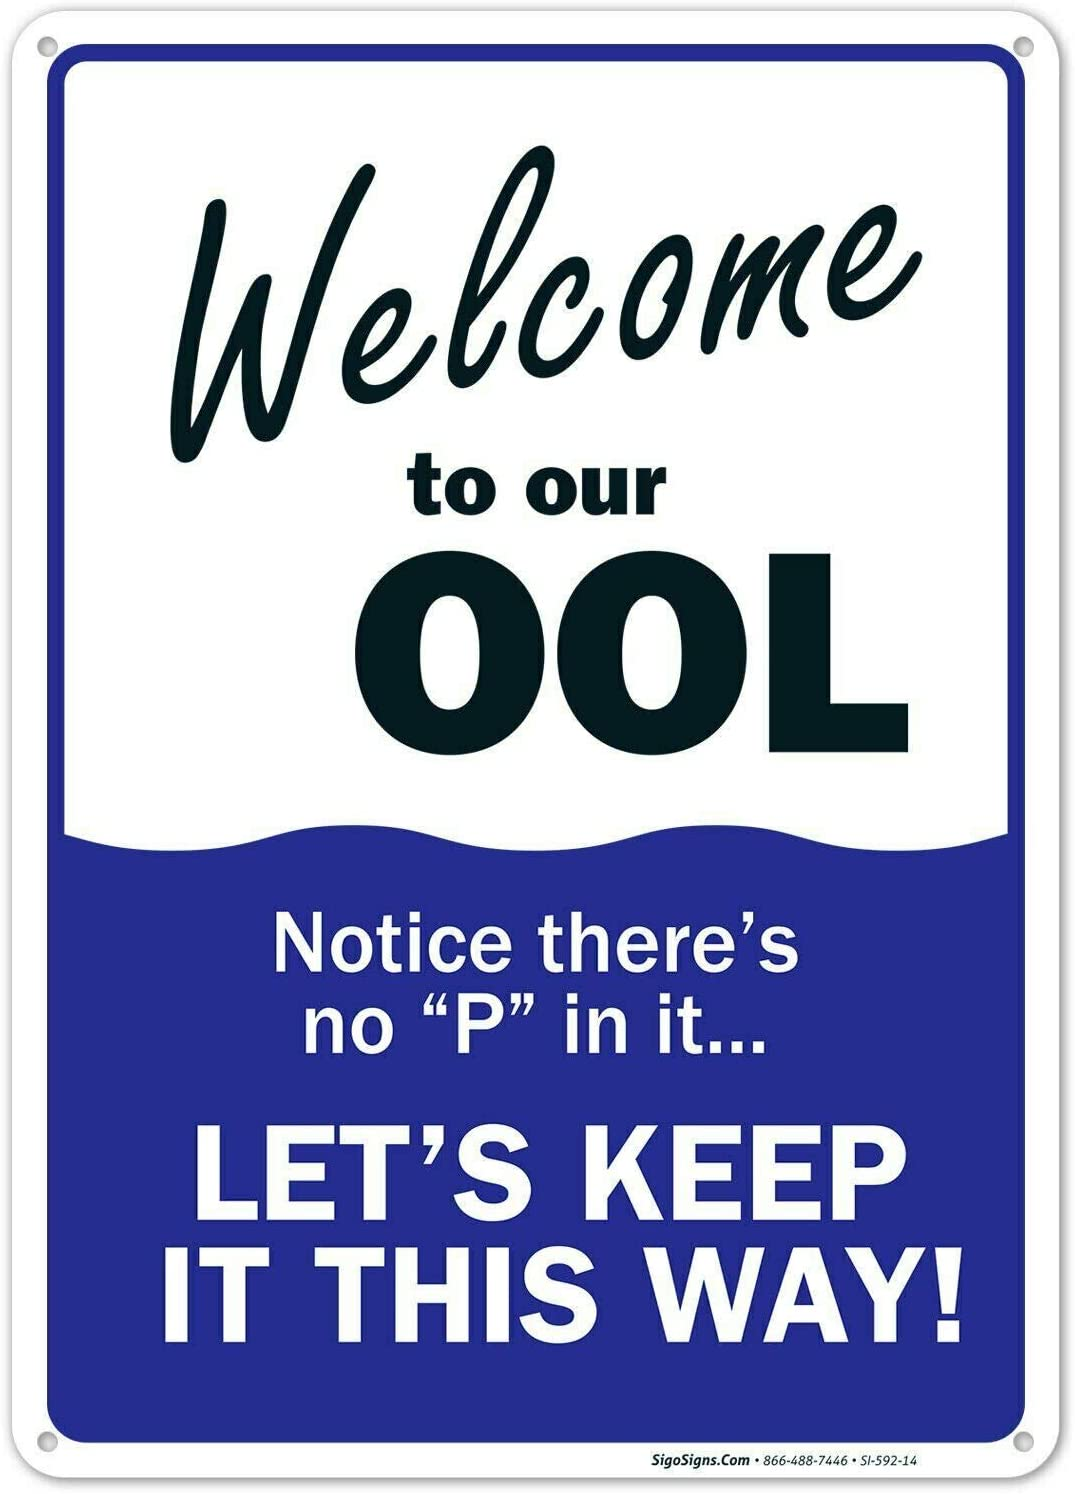 Welcome to Our ool Metal Sign Pool Rules Metal Plaque 12x8 Inches